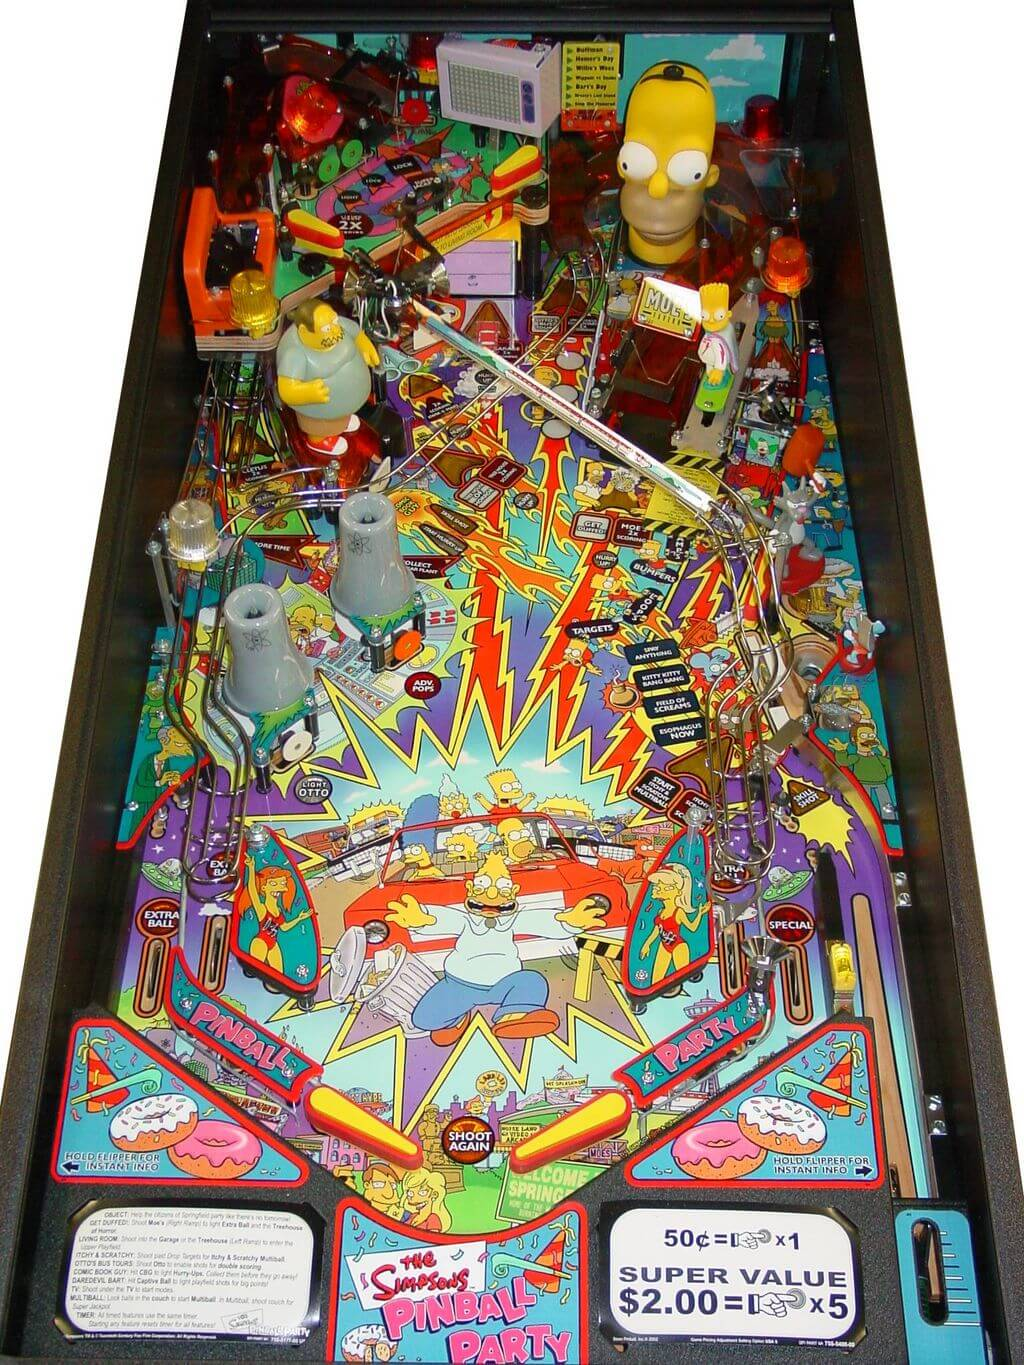 Buy Simpsons Pinball Party Machine Online At 7499